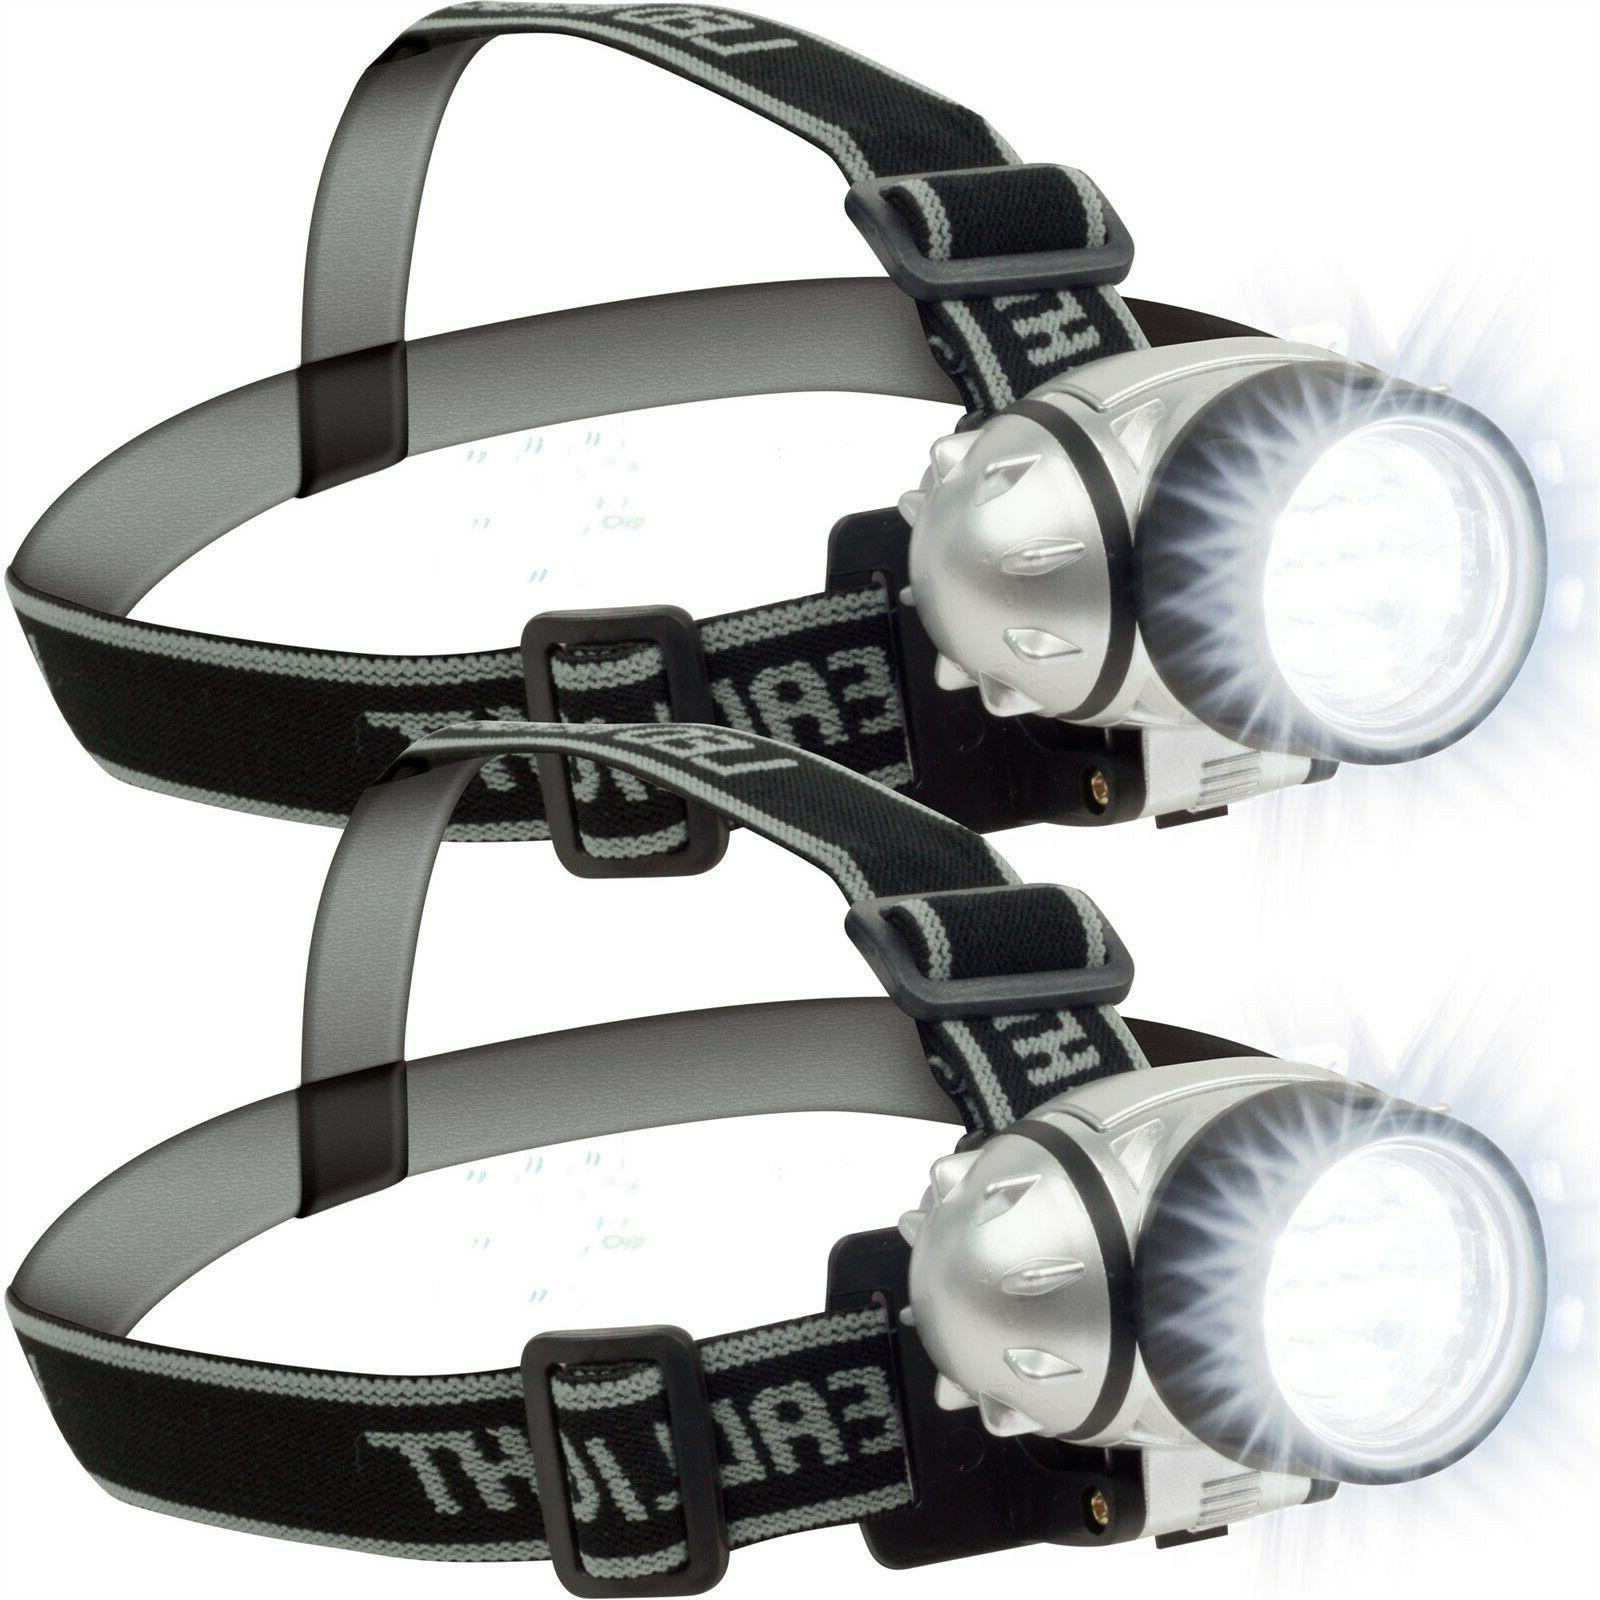 12 led headlamp adjustable strap battery operated